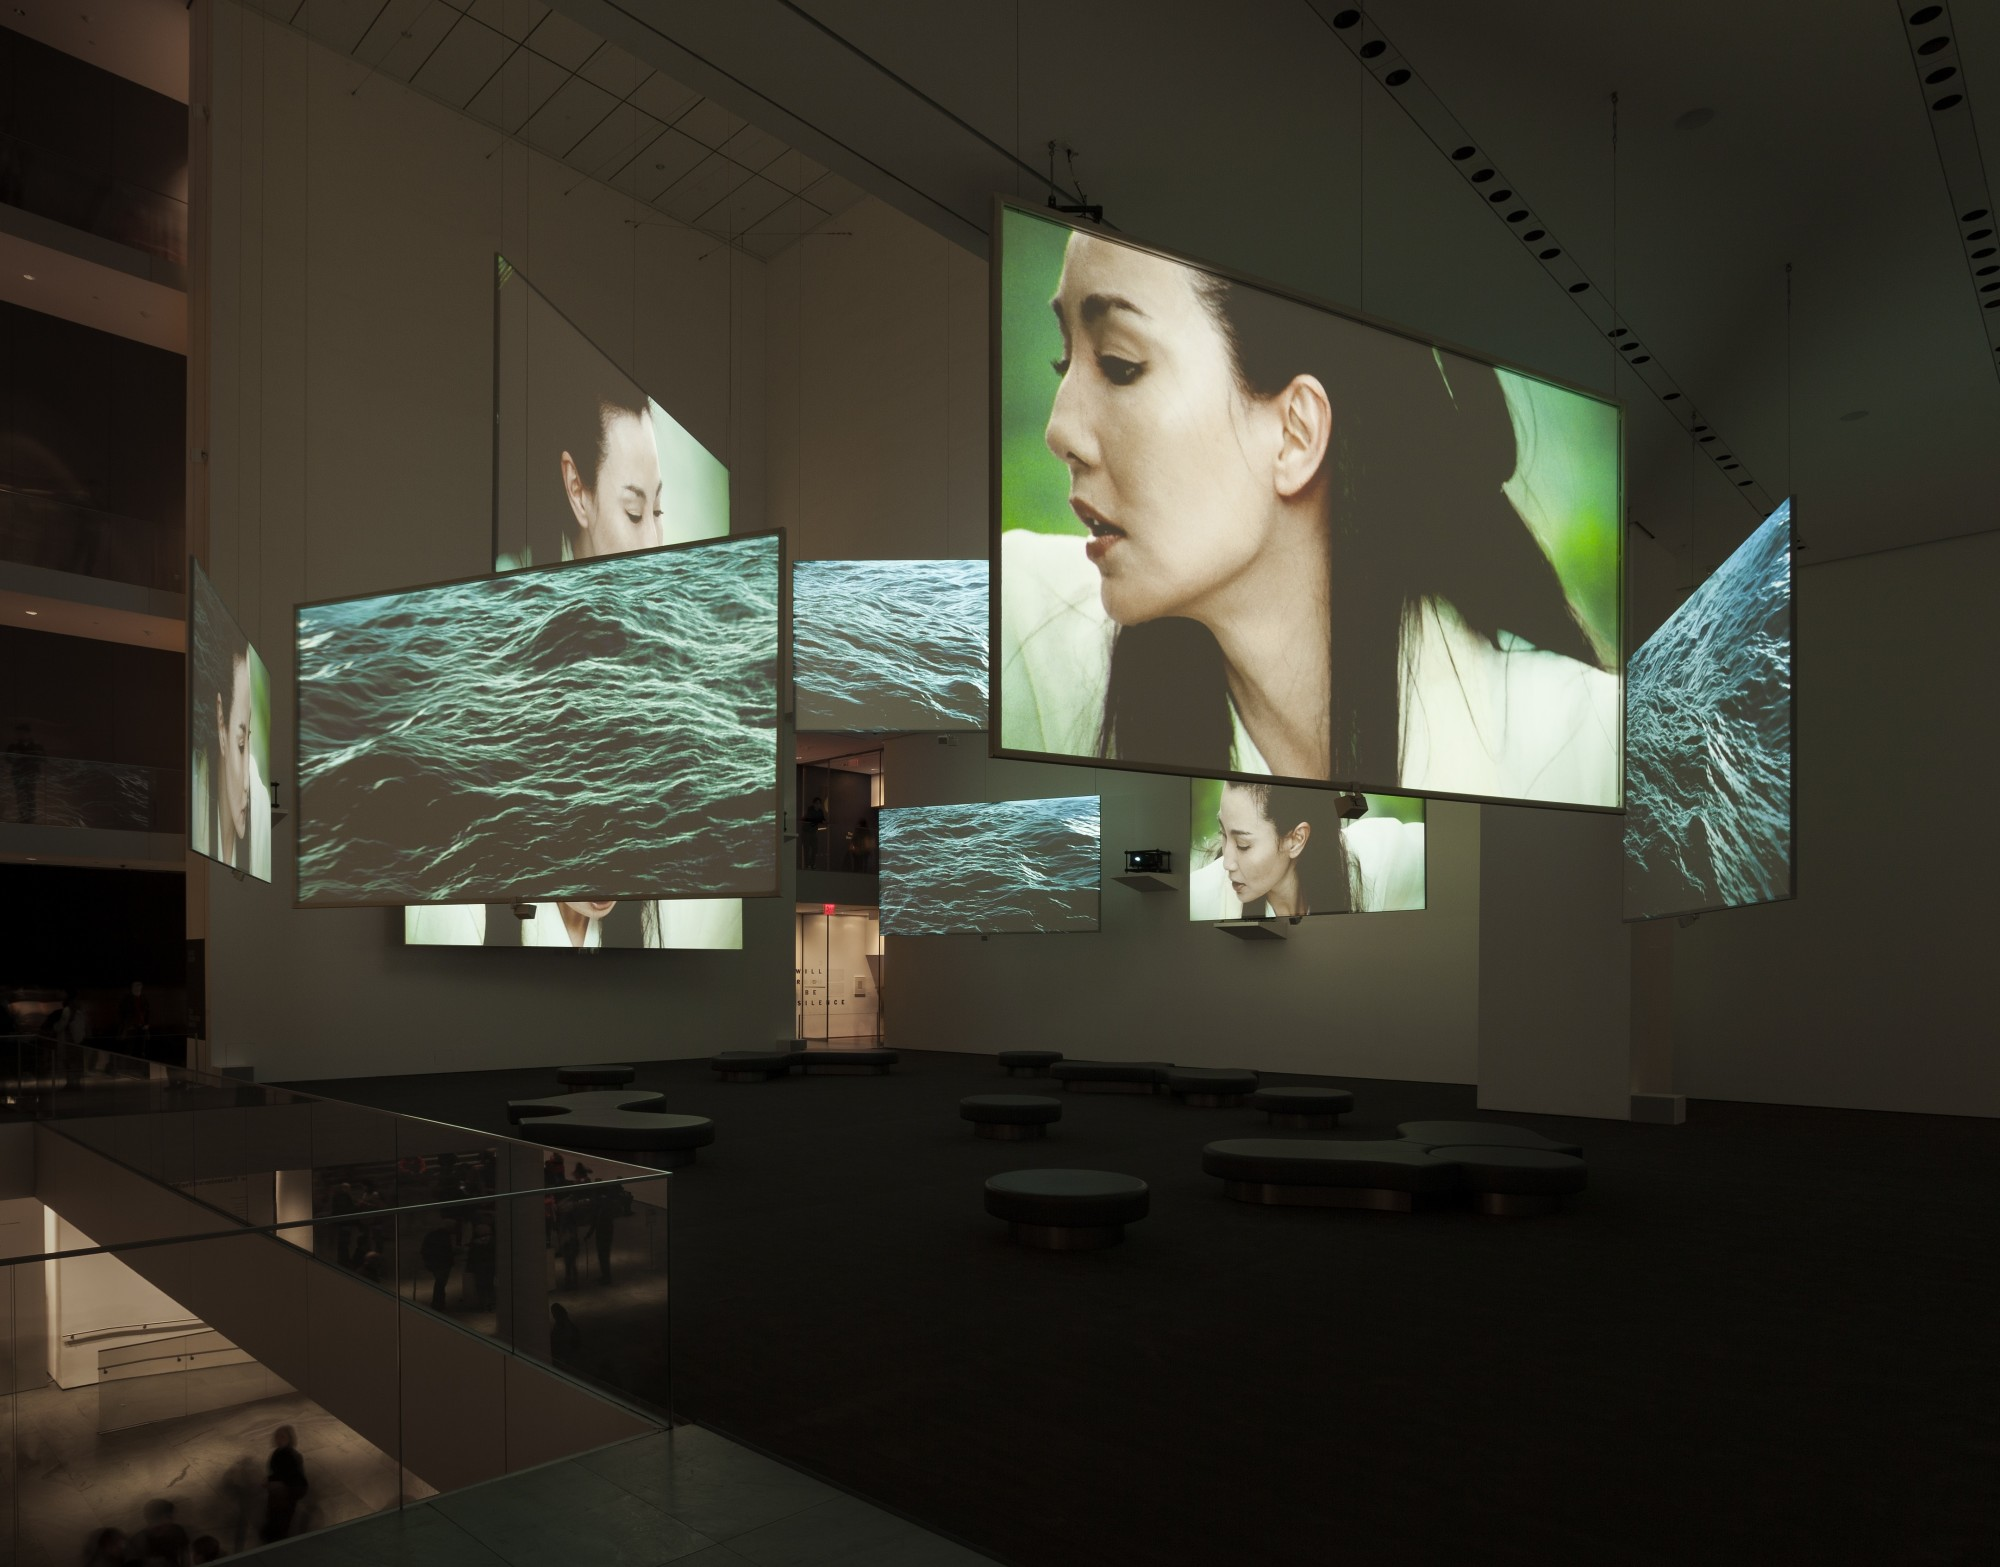 Isaac Julien: Ten Thousand Waves. The Museum of Modern Art (MoMA), New York, 2013  49'41'', nine-screen installation, 35mm film transferred to digital, colour, 9.2 sound